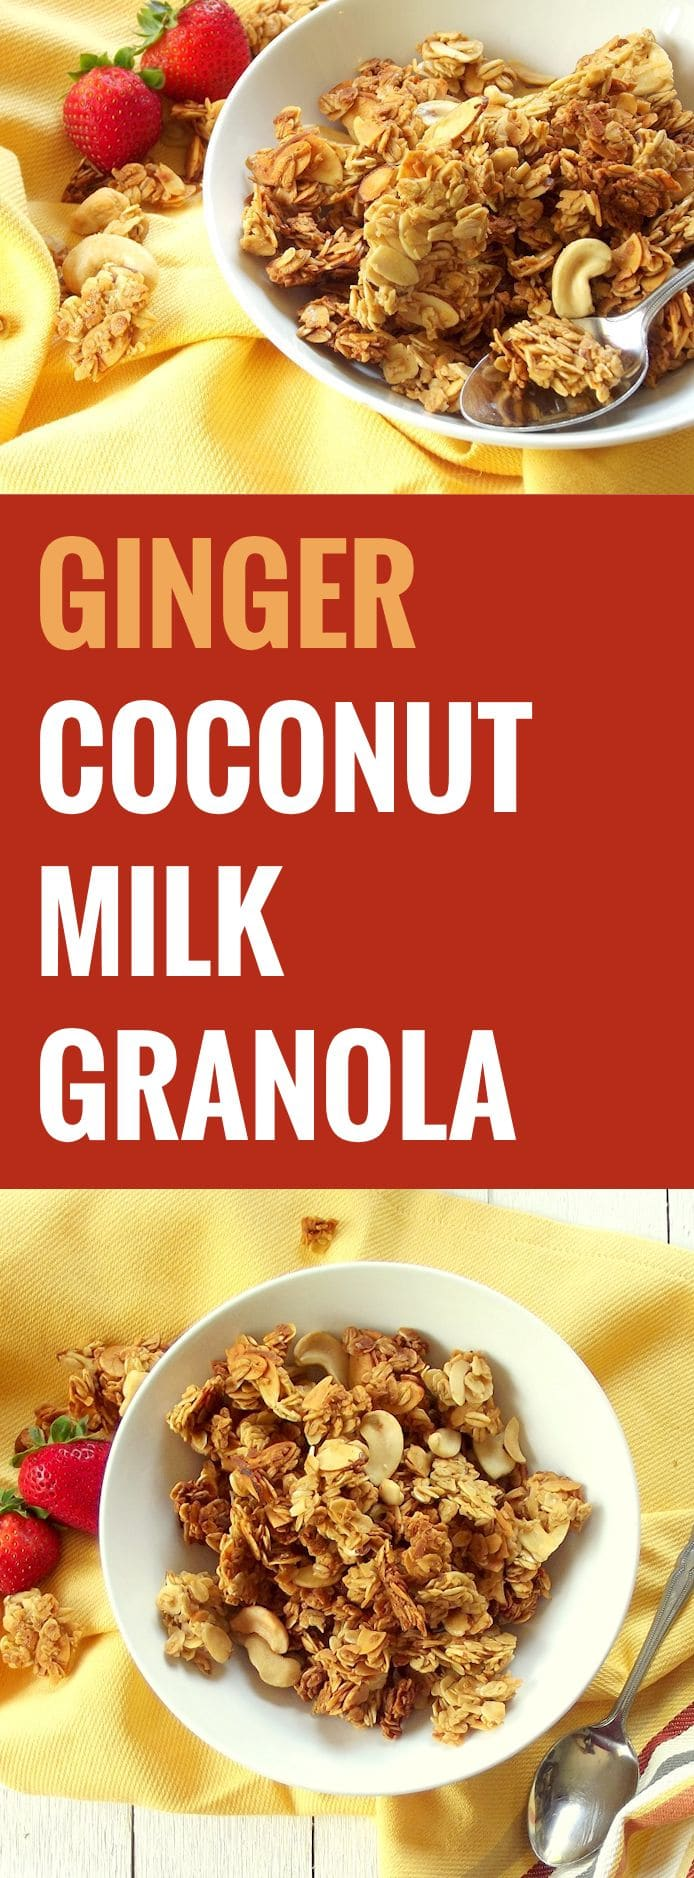 GINGER COCONUT GRANOLA TEXT